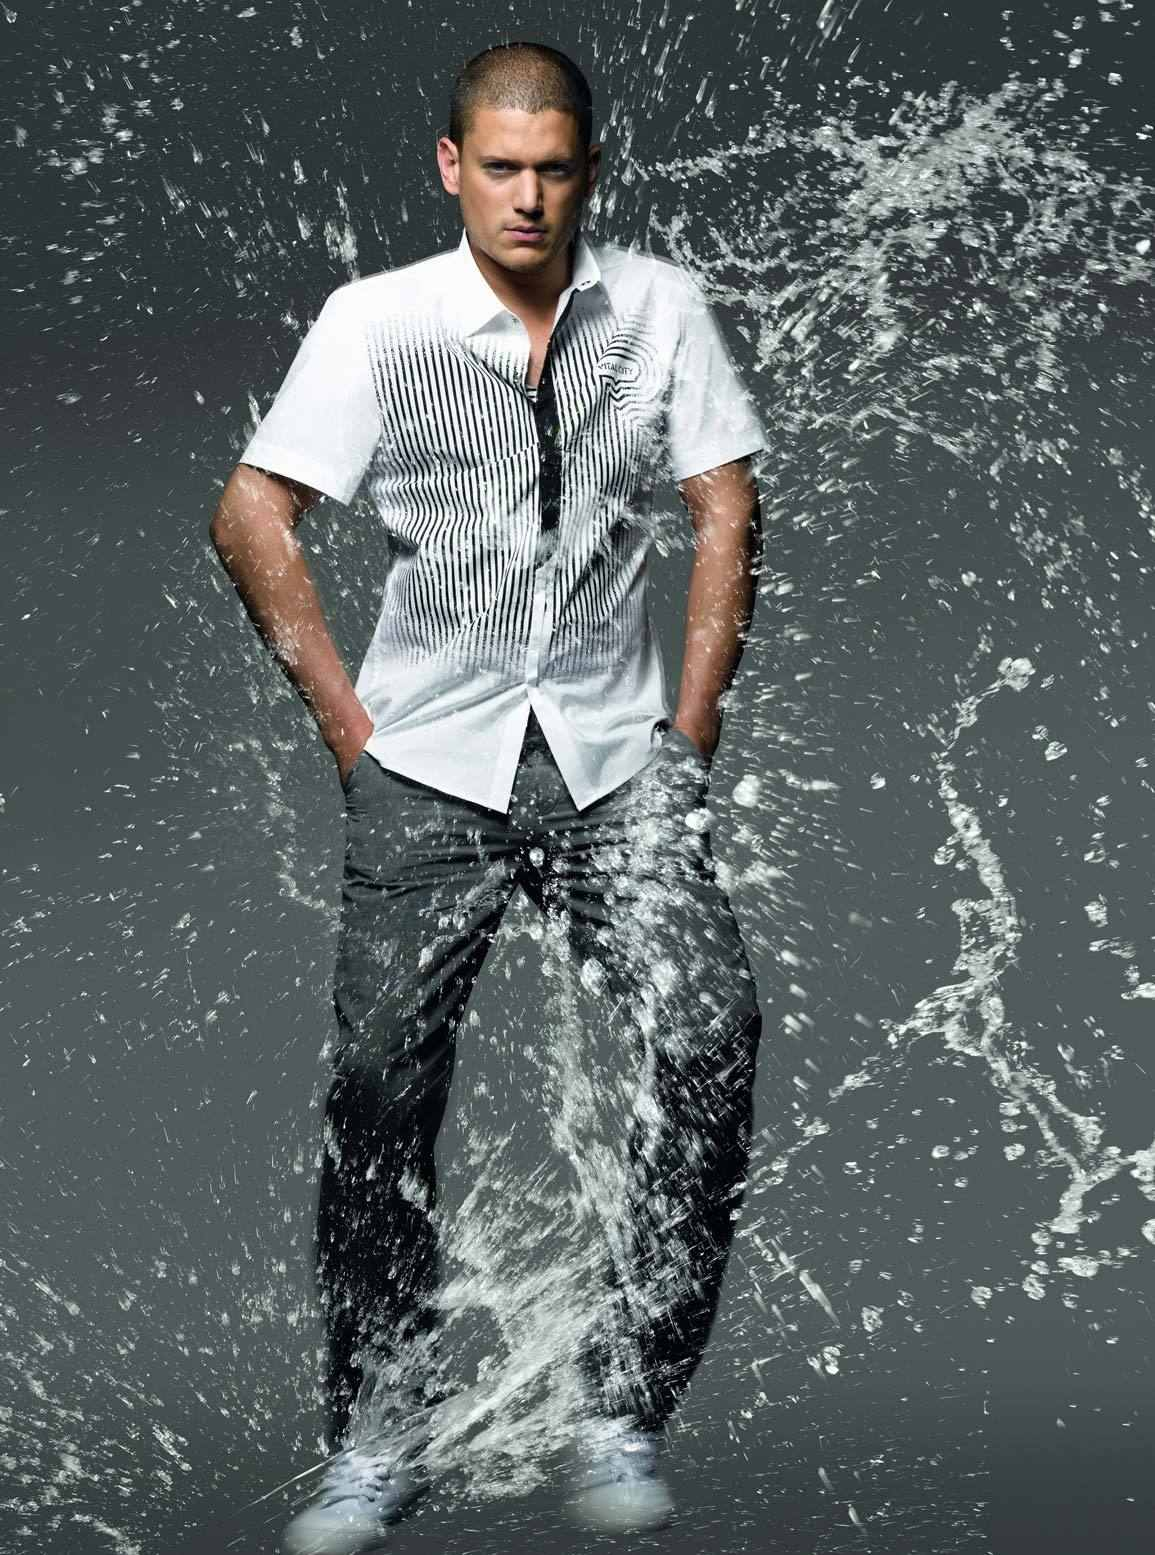 Wentworth Miller : Great Actor and Eye Candy | Tasithoughts